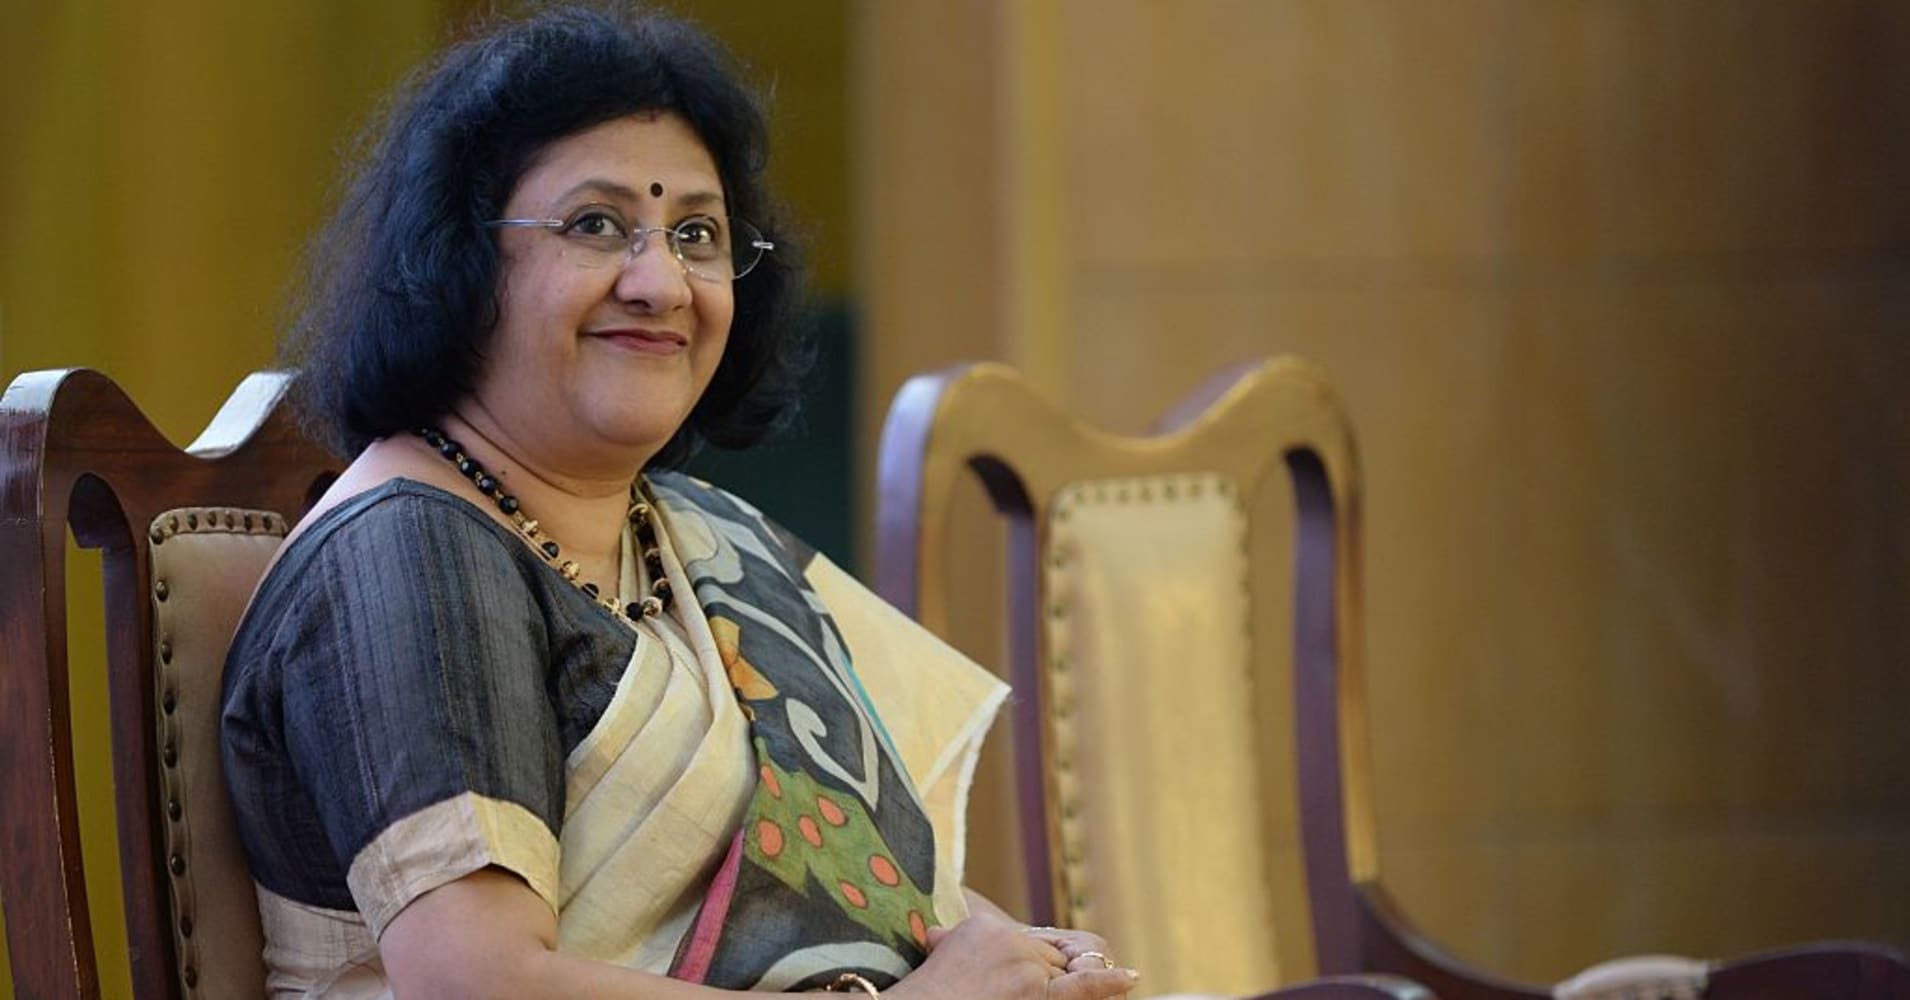 Chairperson of the State Bank of India (SBI), Arundhati Bhattacharya